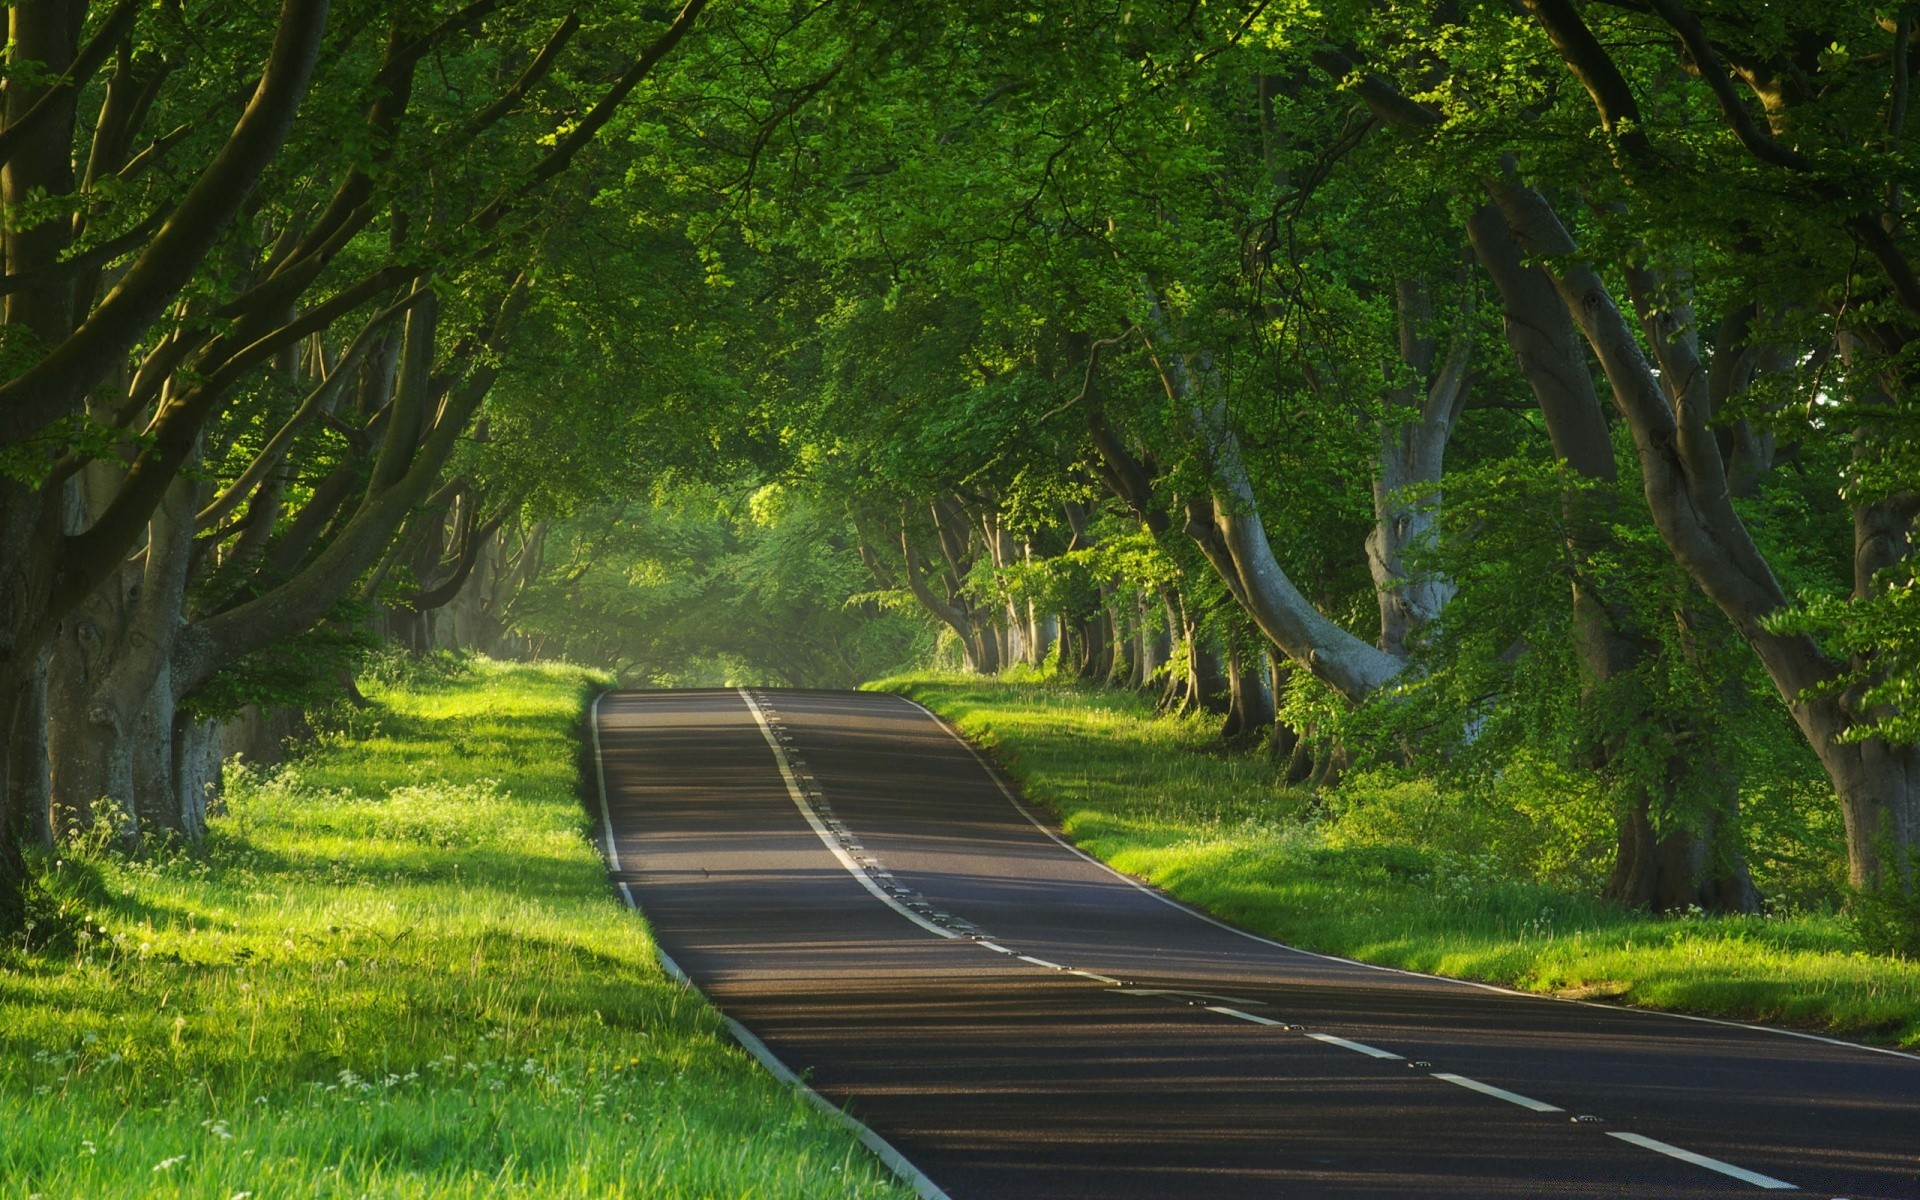 forest road guidance wood tree nature landscape leaf grass lane park summer lush environment dawn scenic rural outdoors country light